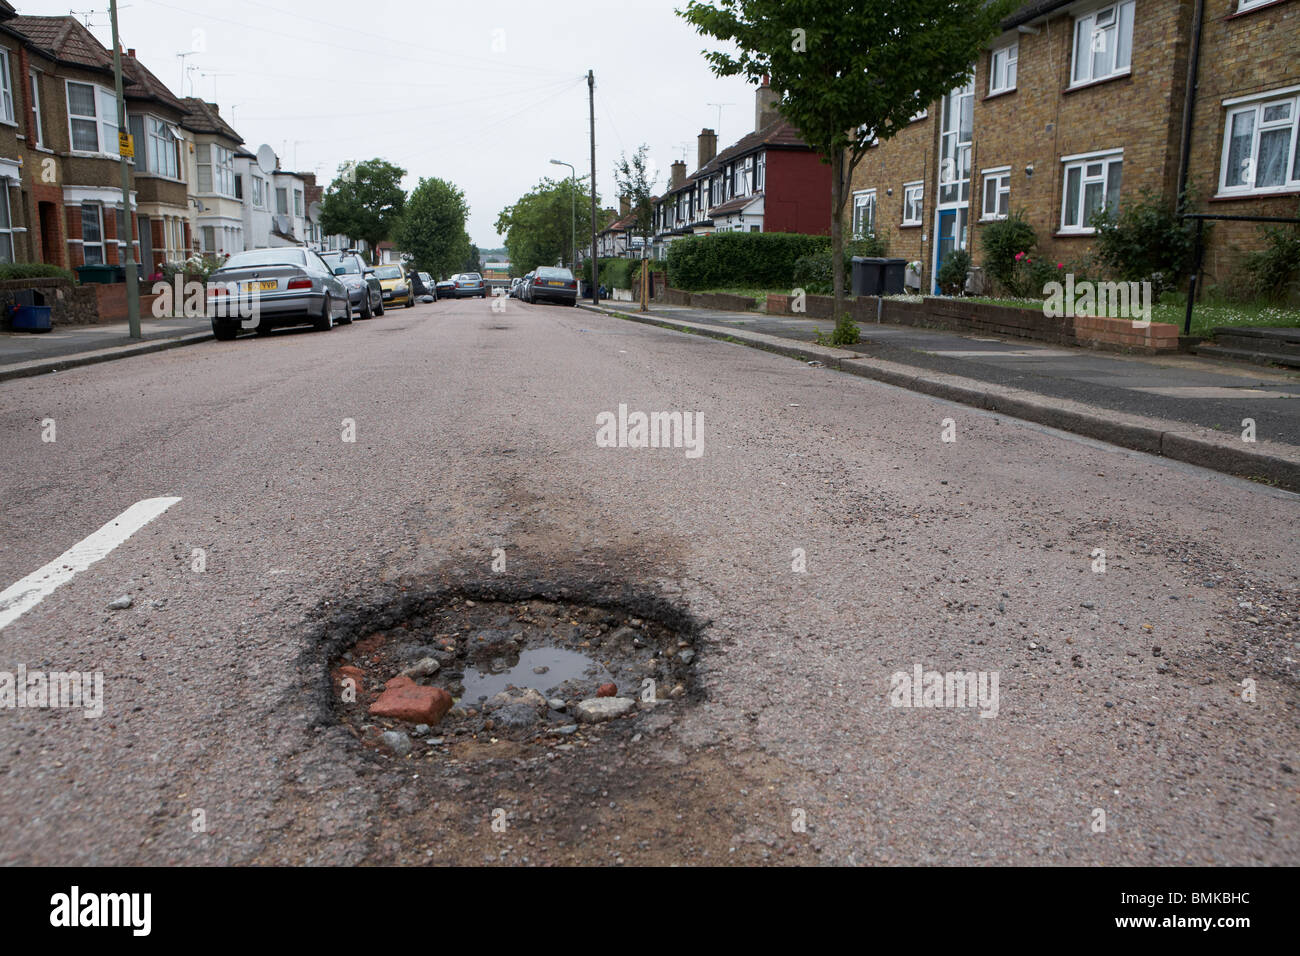 Pot holes in a suburban road in North London - Stock Image